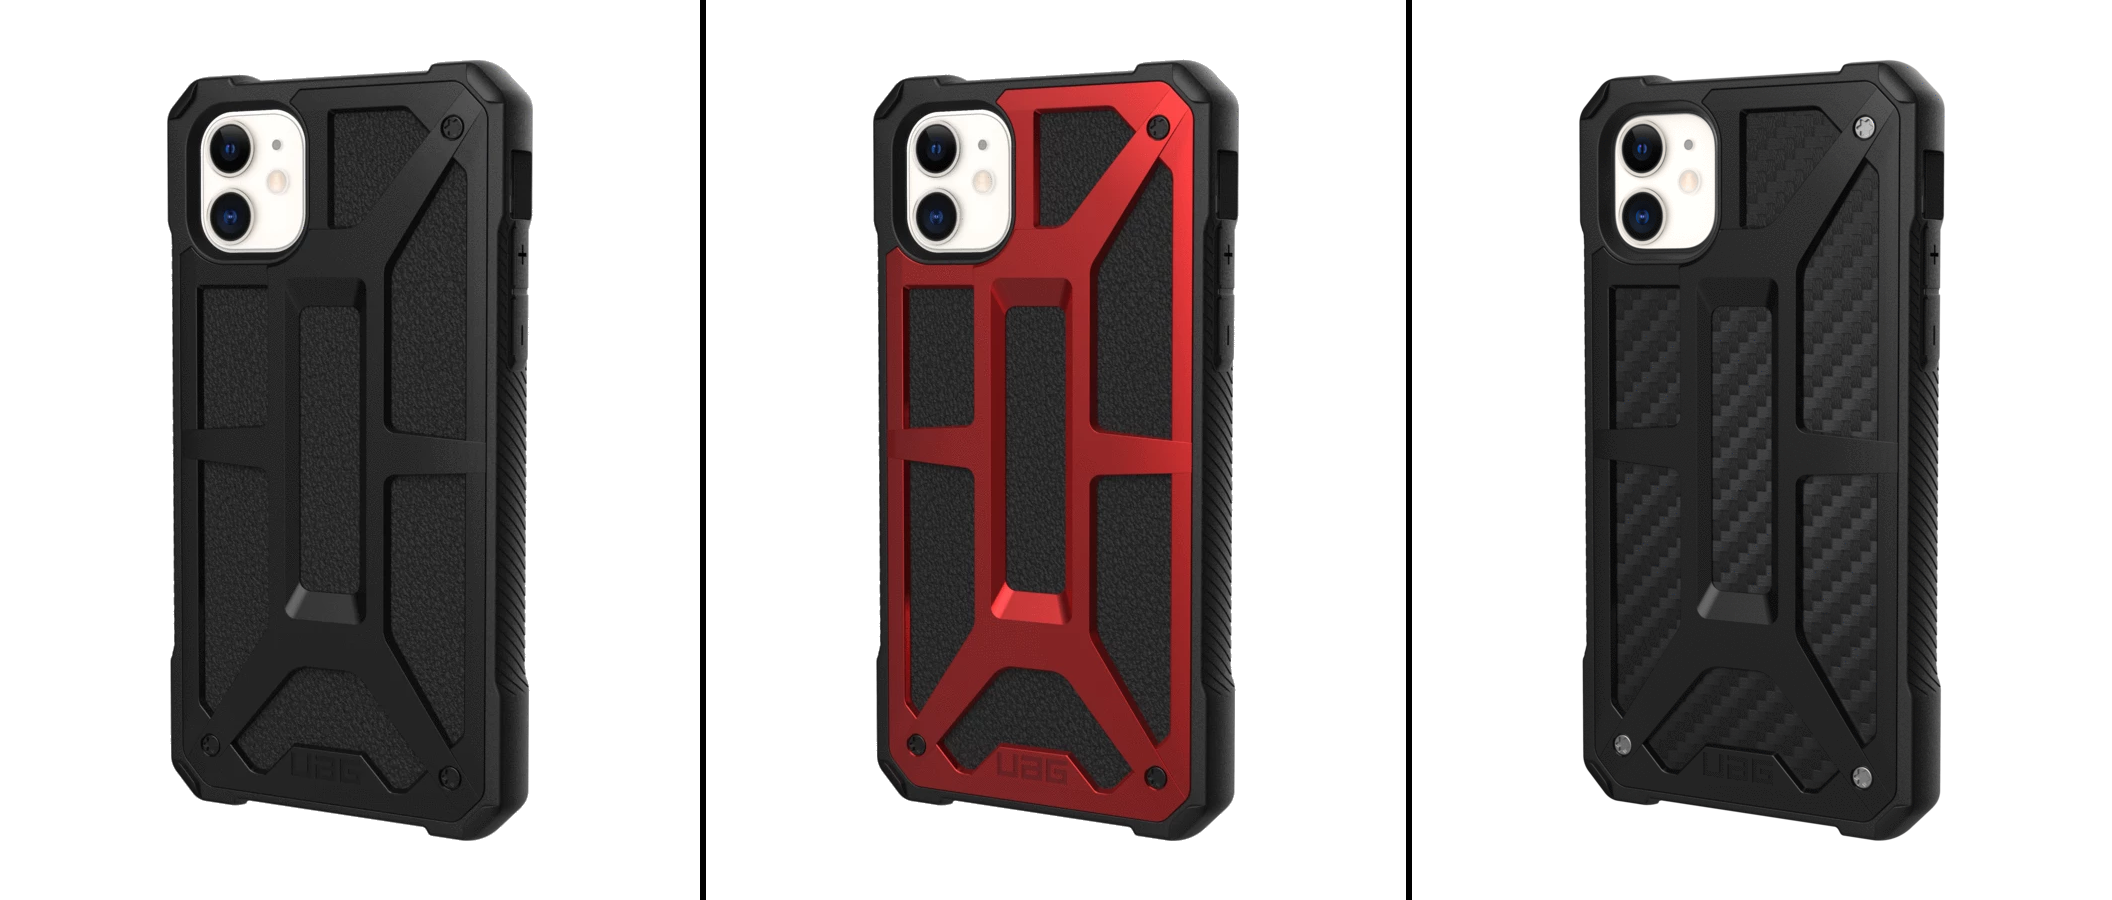 UAG MONARCH Case for the iPhone 11 (6.1 inches)